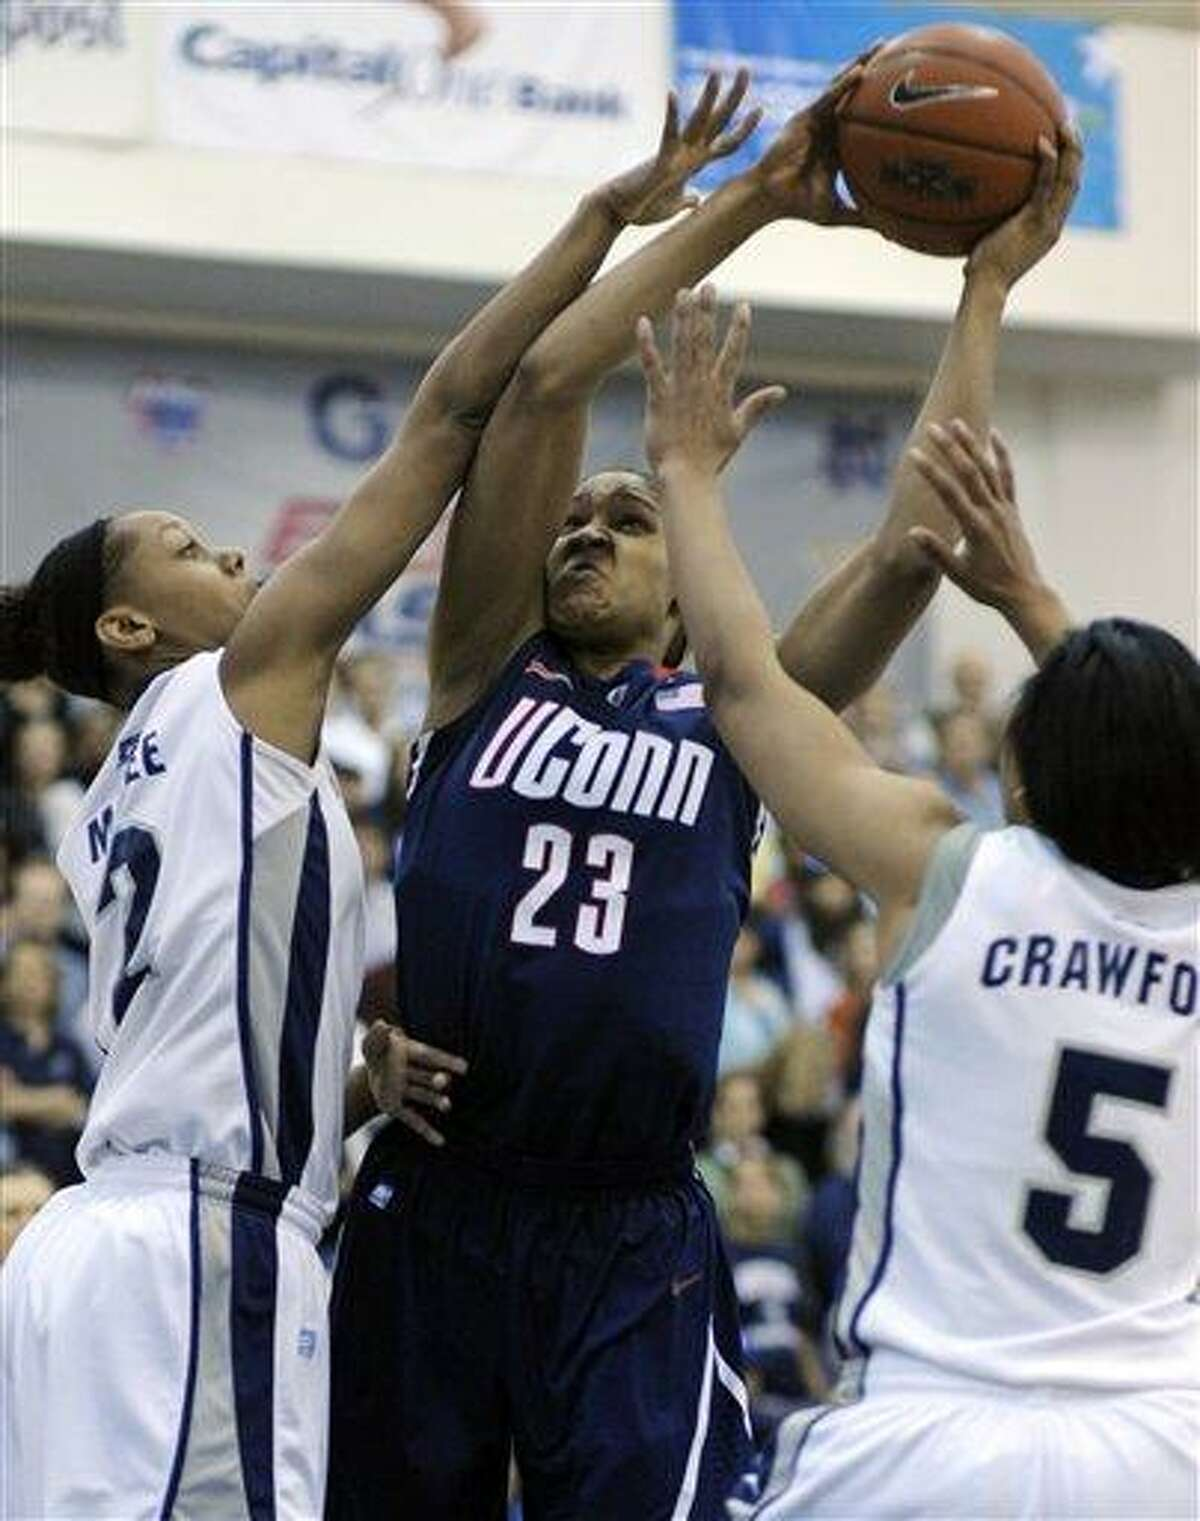 Connecticut forward Maya Moore, 23, center, is tied-up by Georgetown forwards Tia Magee, 2, left, and Adria Crawford during the first period of their Big East game in Washington, Saturday, Feb. 26, 2011. (AP Photo/Cliff Owen)